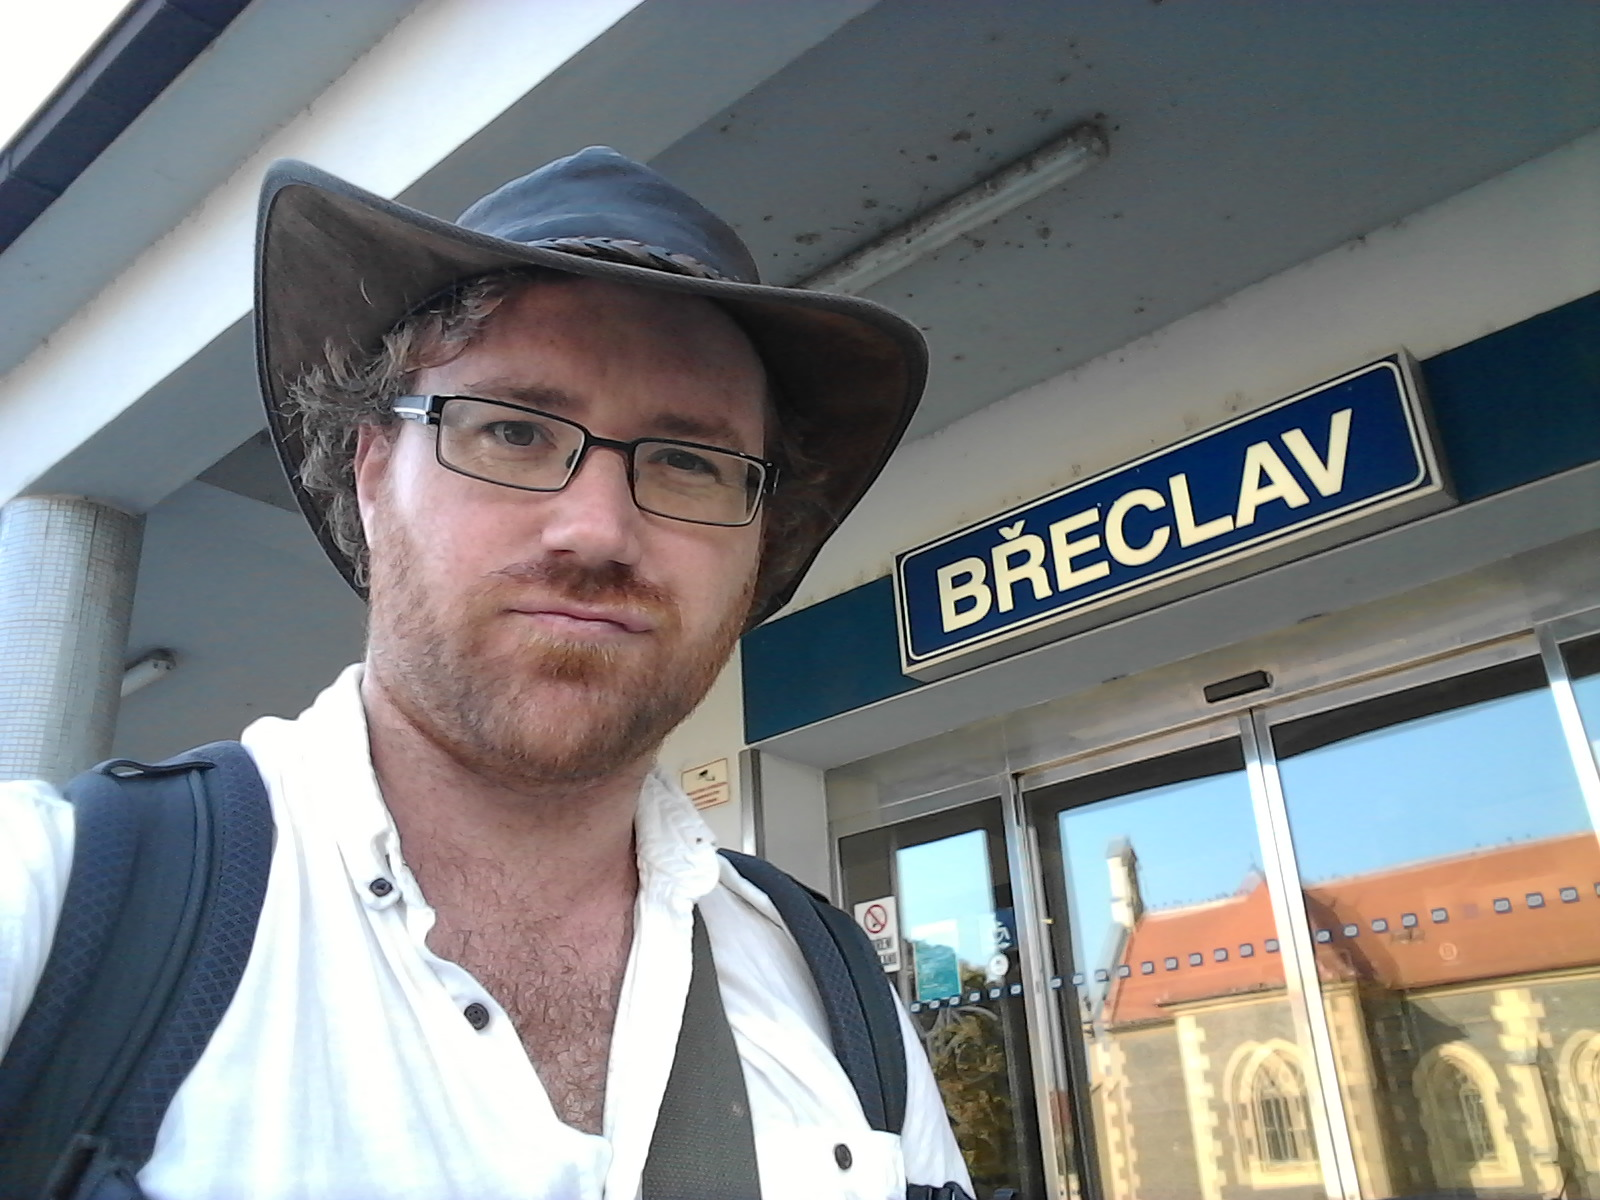 DAY 12: Czech Booking